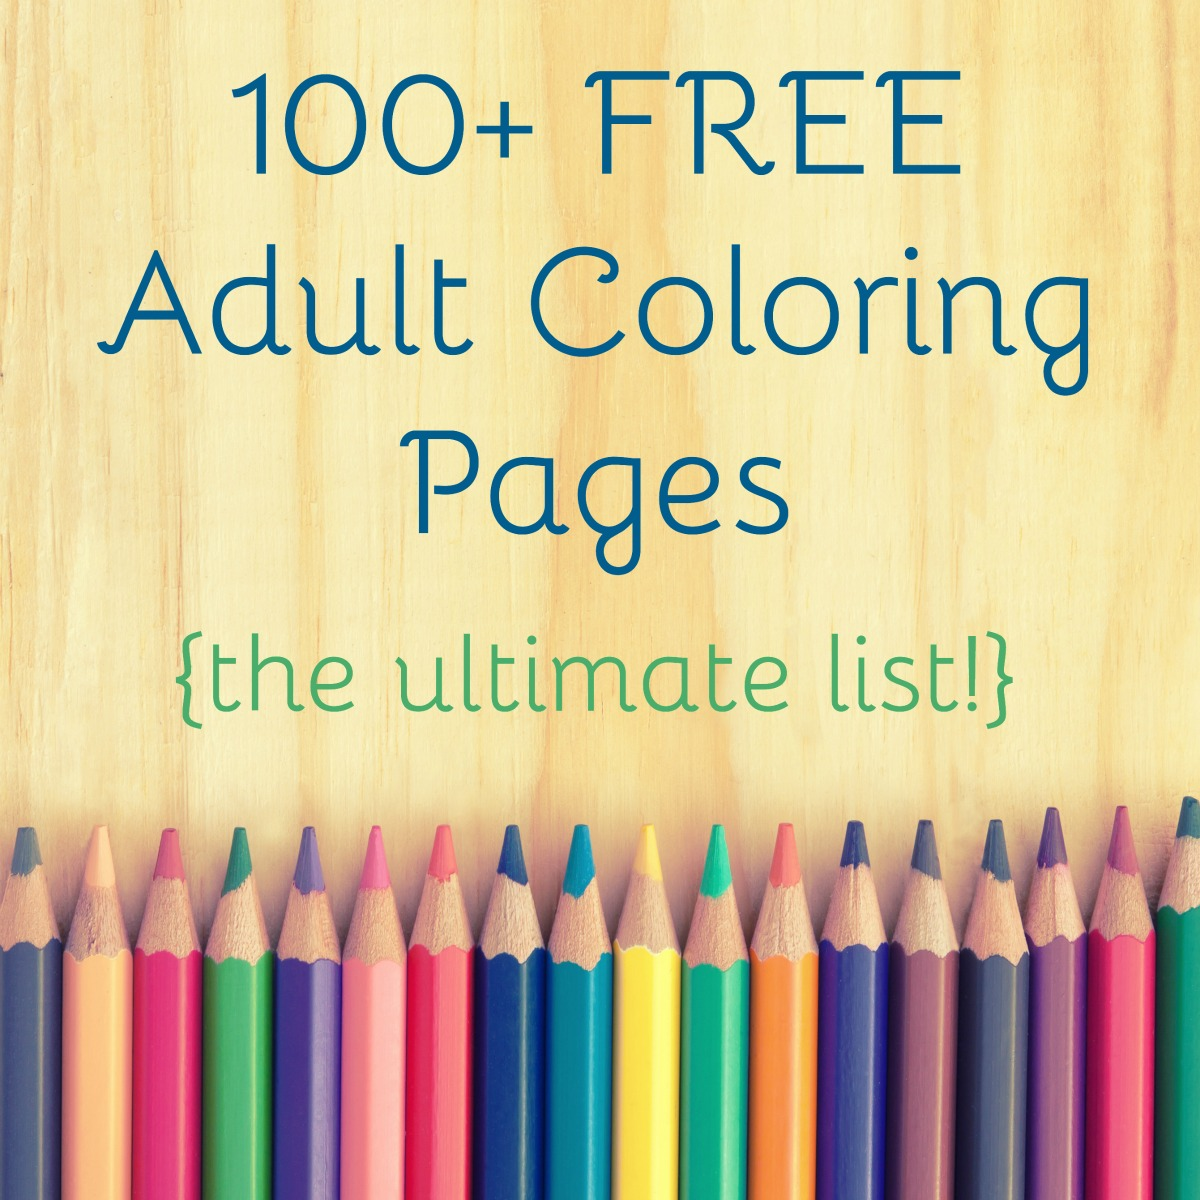 100-free-adult-coloring-pages